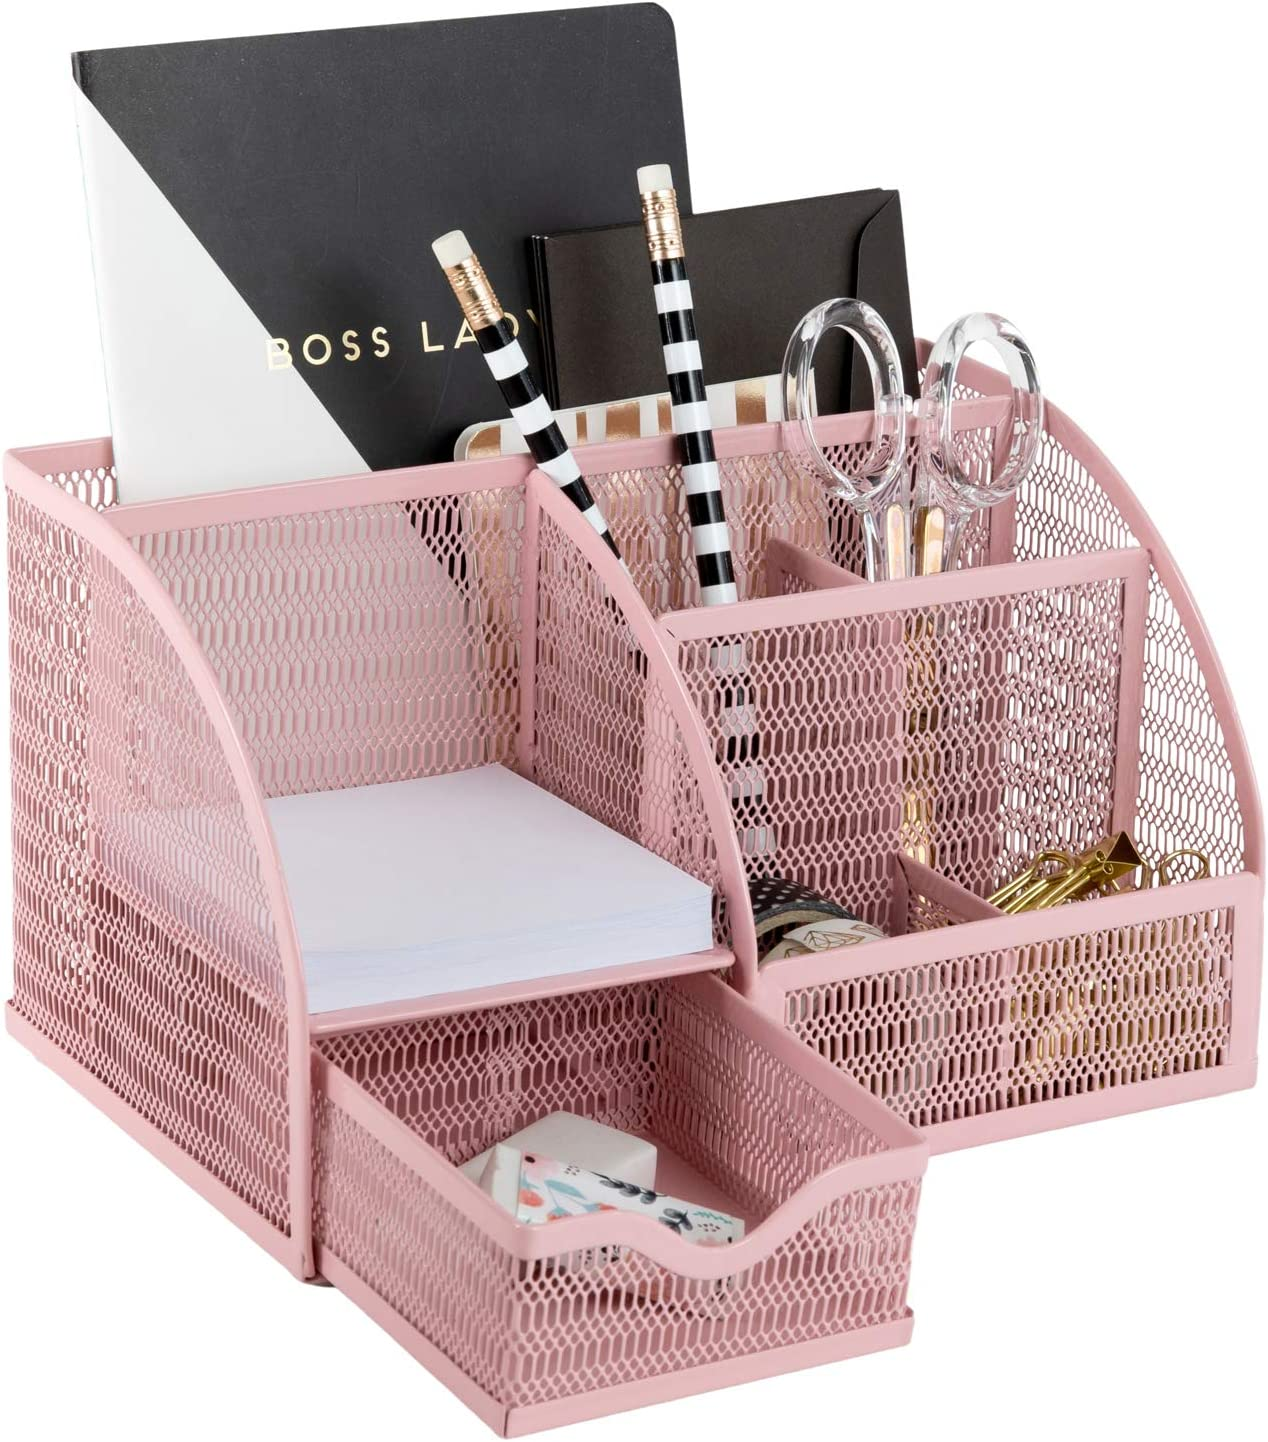 Light Pink Desk Organizer - Cute and Girly Pink Desk Accessories - Office Storage for Girls and Women - Paper Storage and Office Supply Storage - Home Office